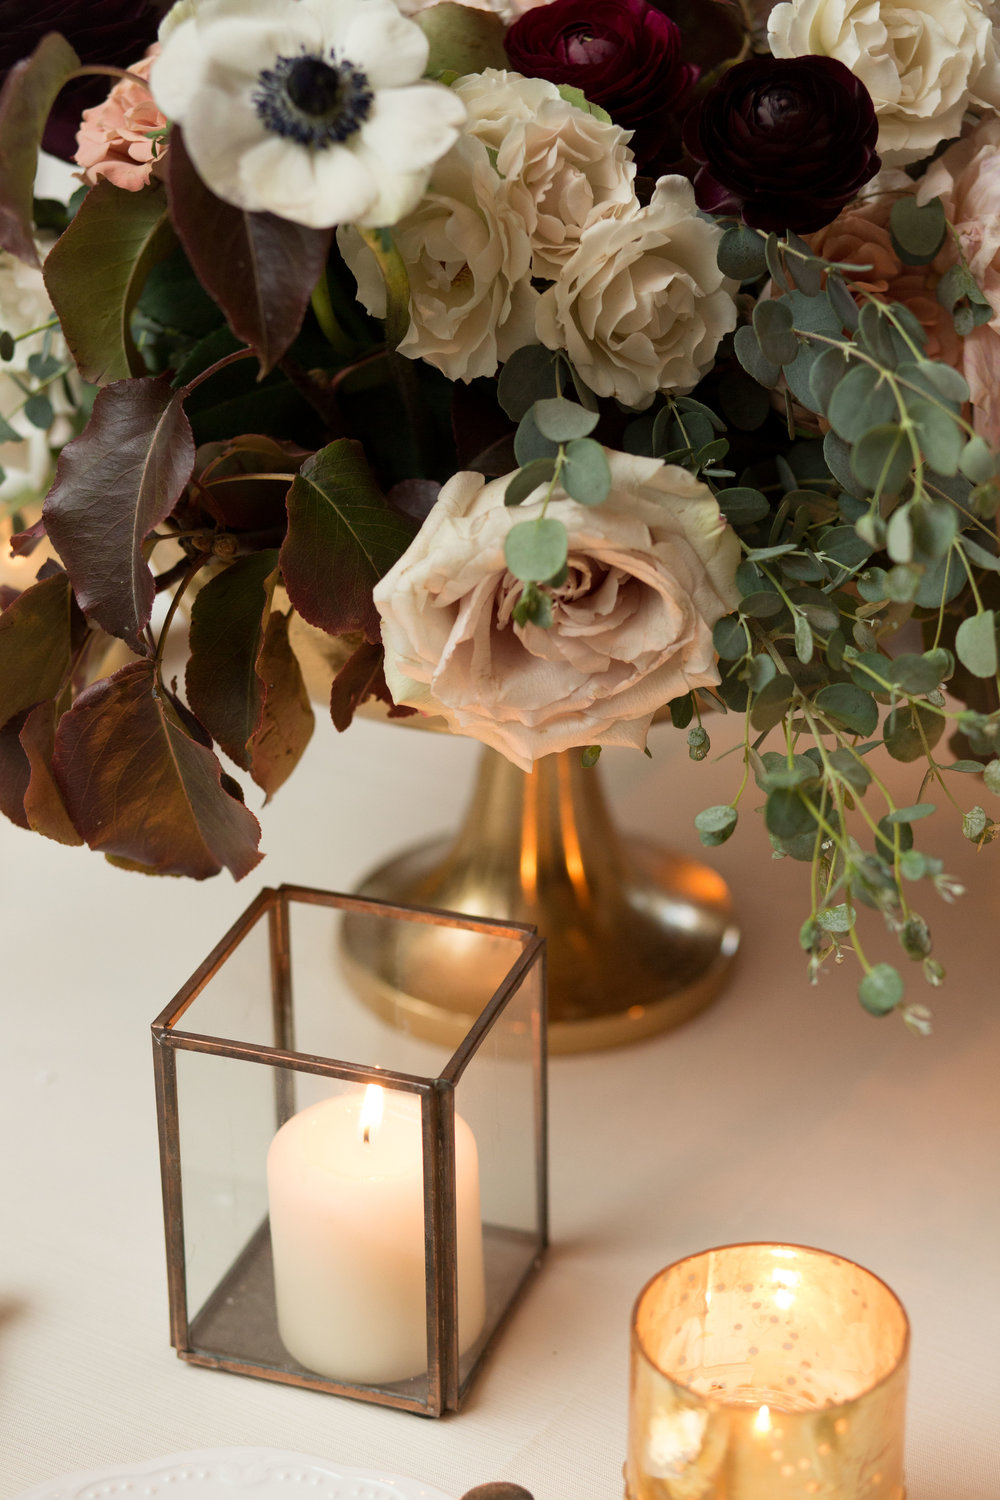 Floral by Fleur Inc, Photo by Natalie Probst